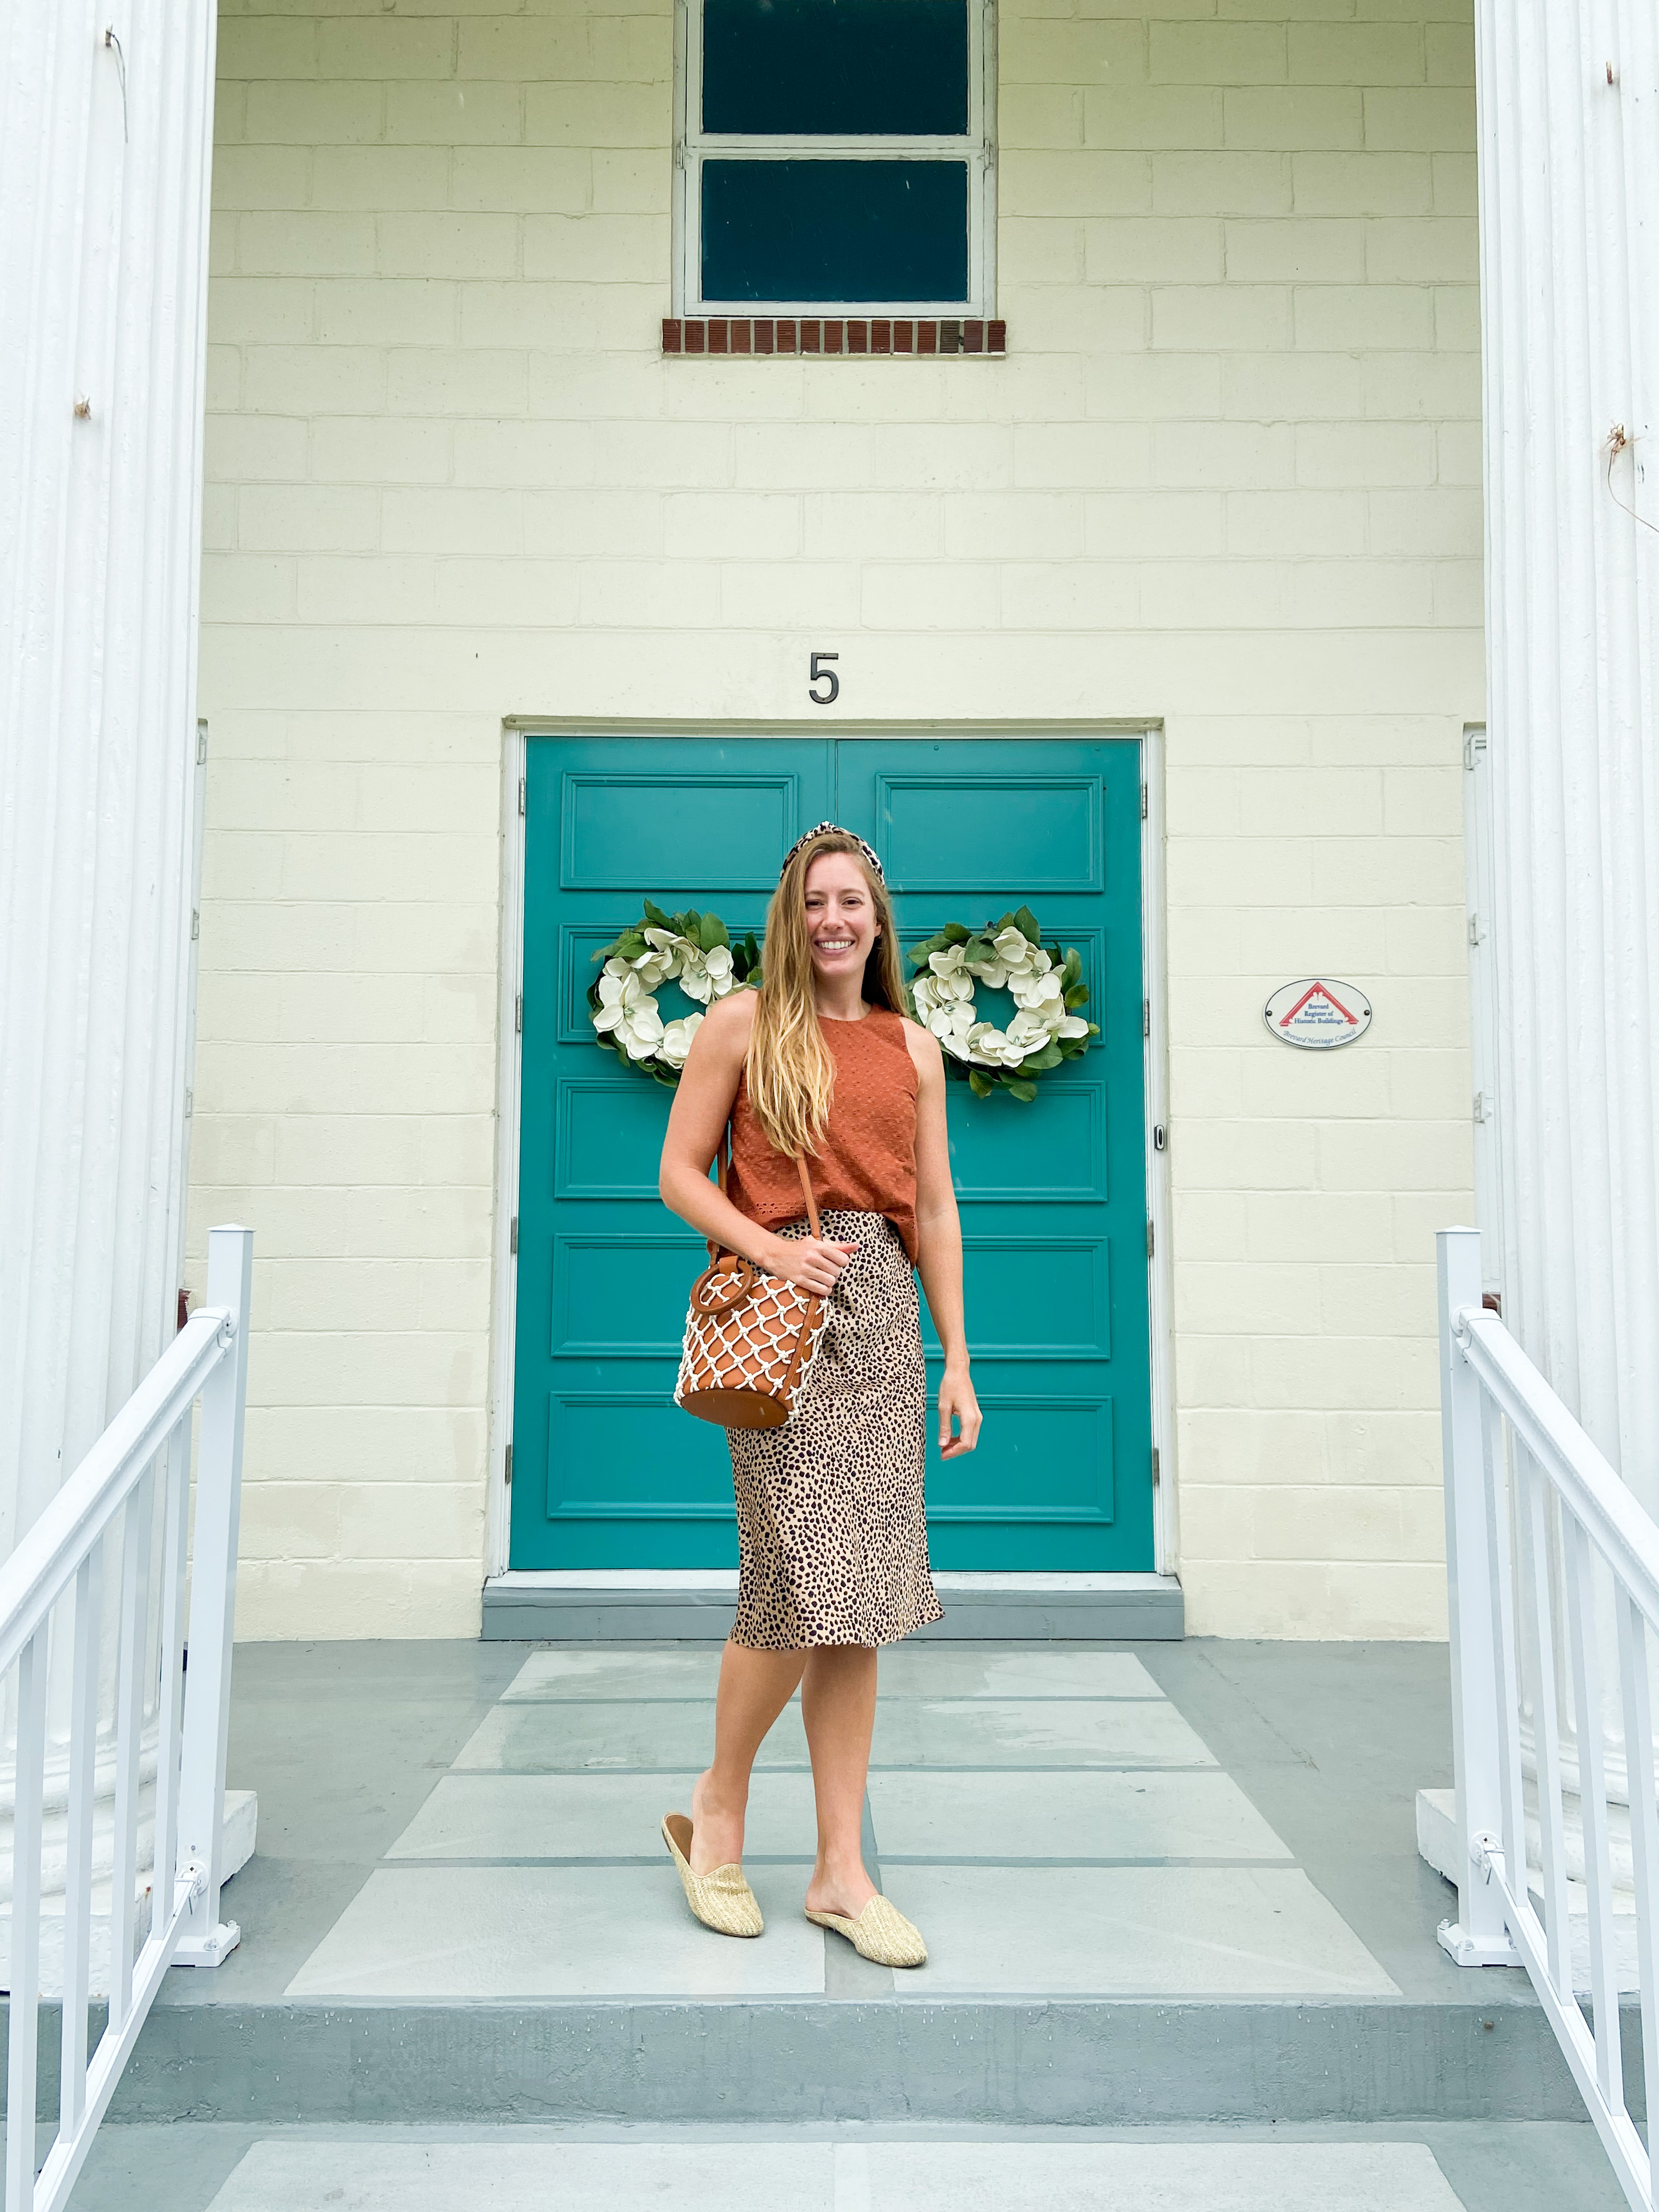 3 Ways to Style a Leopard Skirt for Fall / Warm Weather Fall Outfits / Fall Transition Outfits / Cute Fall Outfits / Modest Winter Outfits / Leopard Skirt Outfit Fall / Autumn Skirt Outfit - Sunshine Style, A Florida Fashion and Lifestyle Blog by Katie